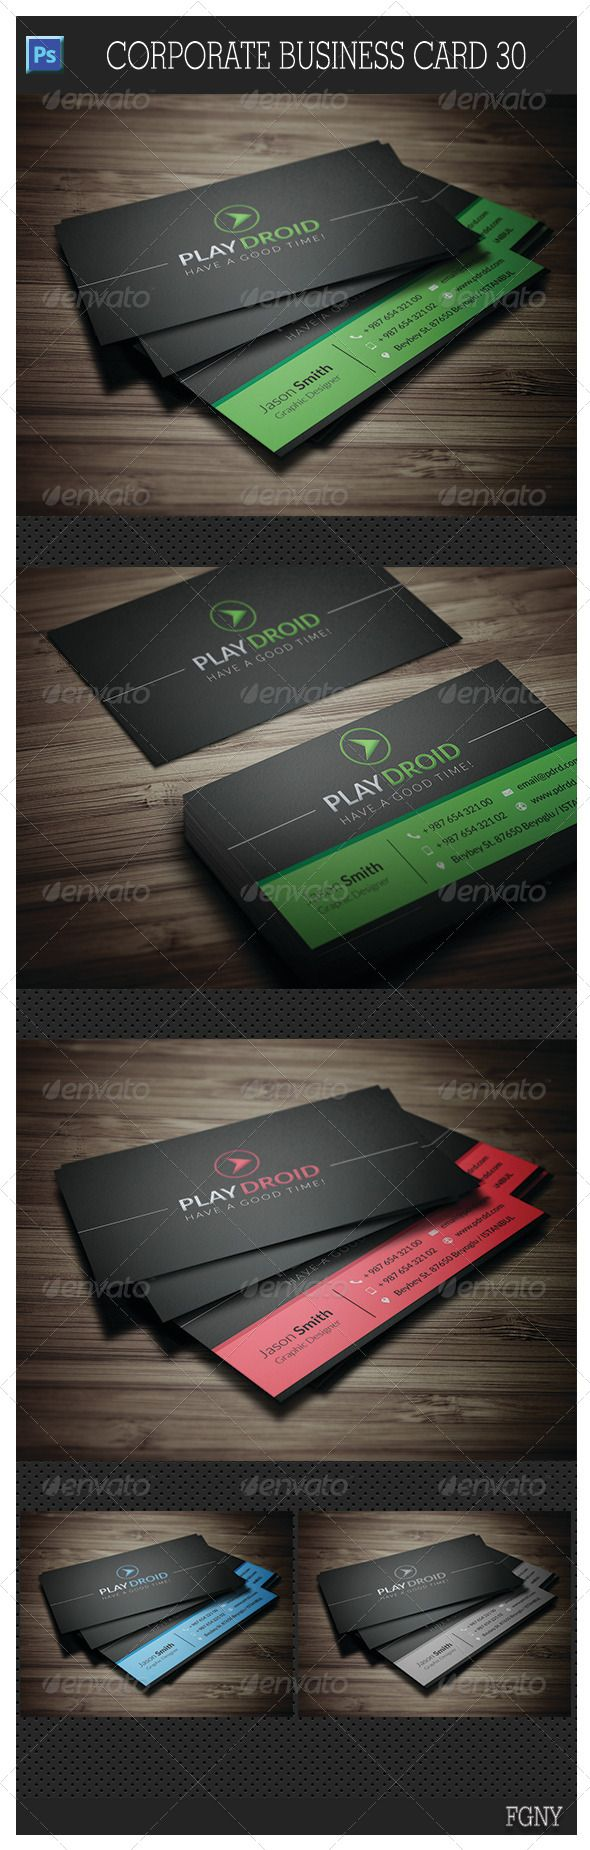 Corporate Business Card 30 - #Corporate #Business #Cards Download here: https://graphicriver.net/item/corporate-business-card-30/5841909?ref=alena994